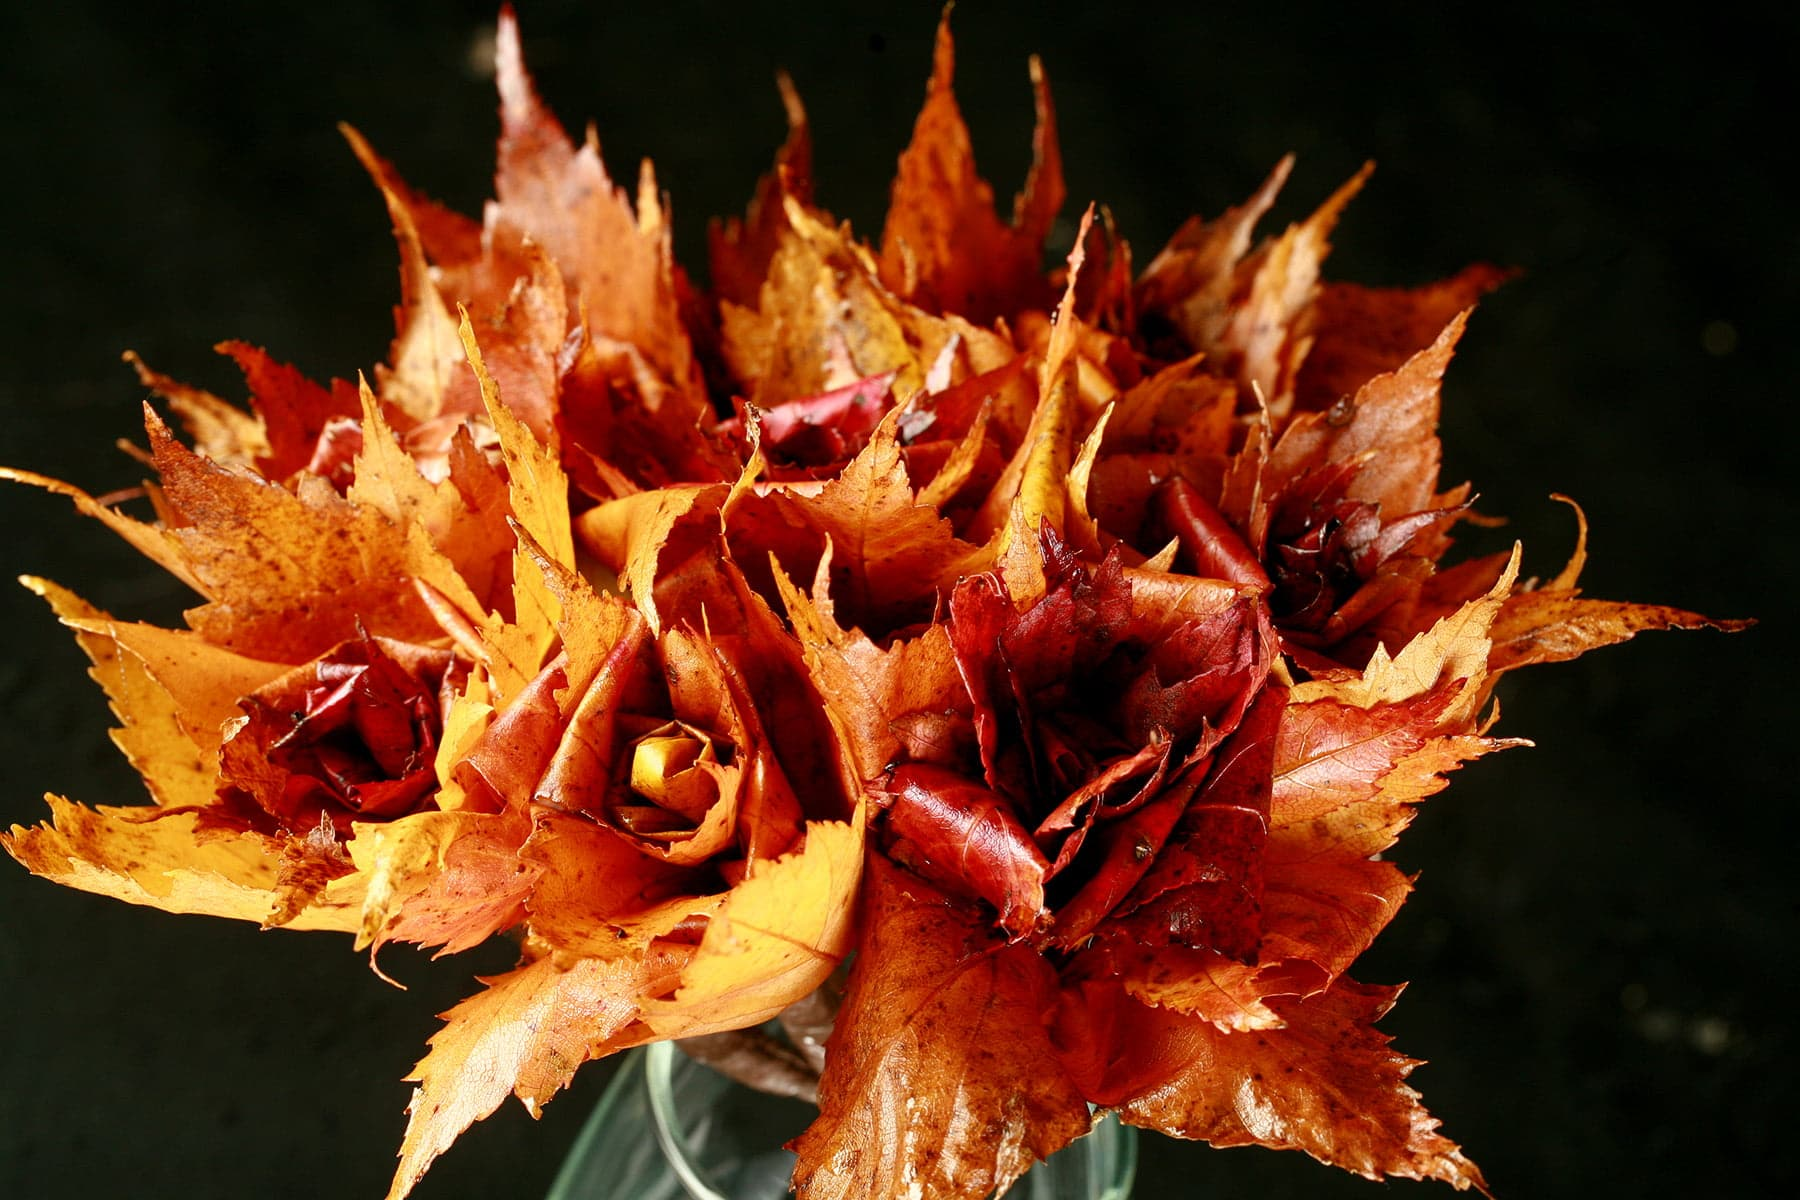 A bouquet of Maple Leaf Roses - roses that have been handcrafted from freshly fallen maple leaves.